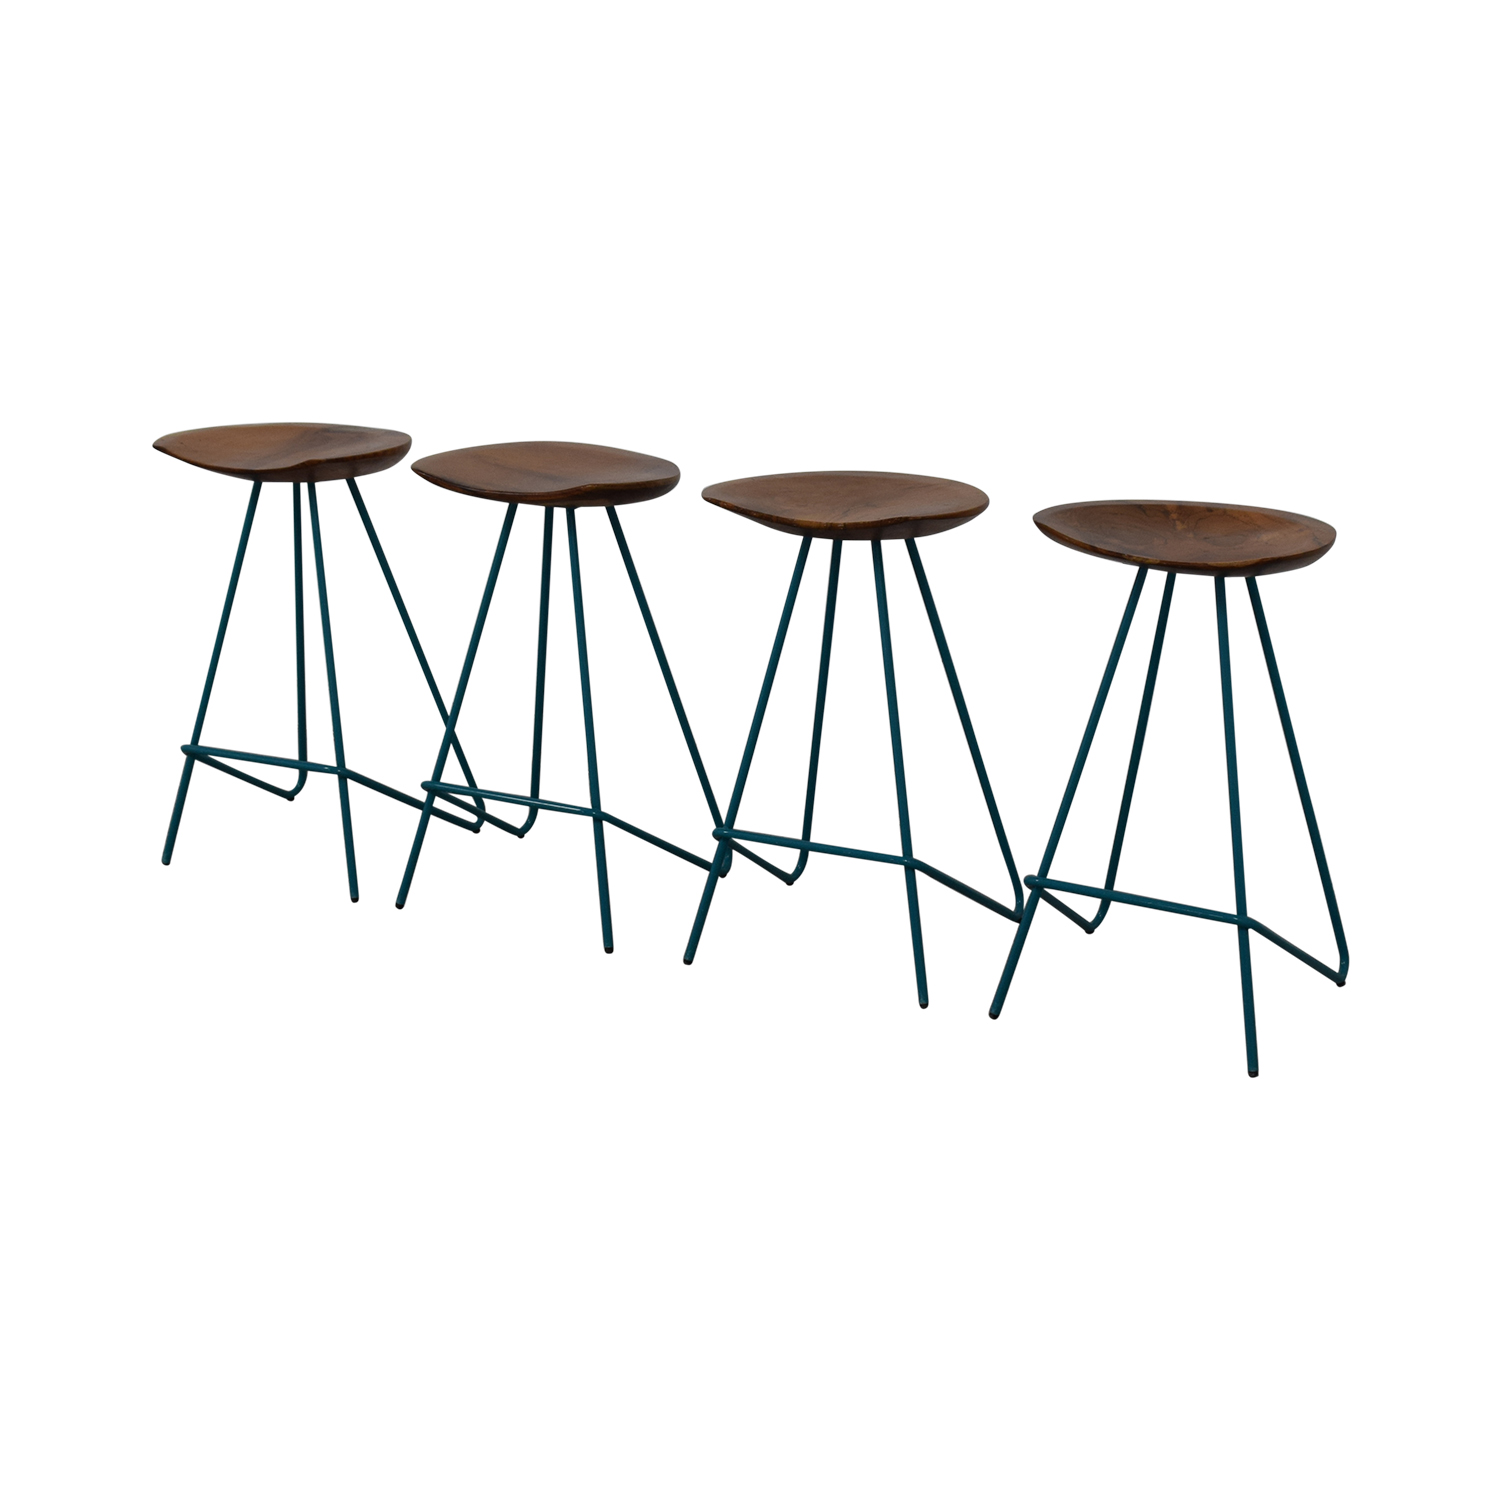 buy From the Source Teal Perch Bar Stools From the Source Stools